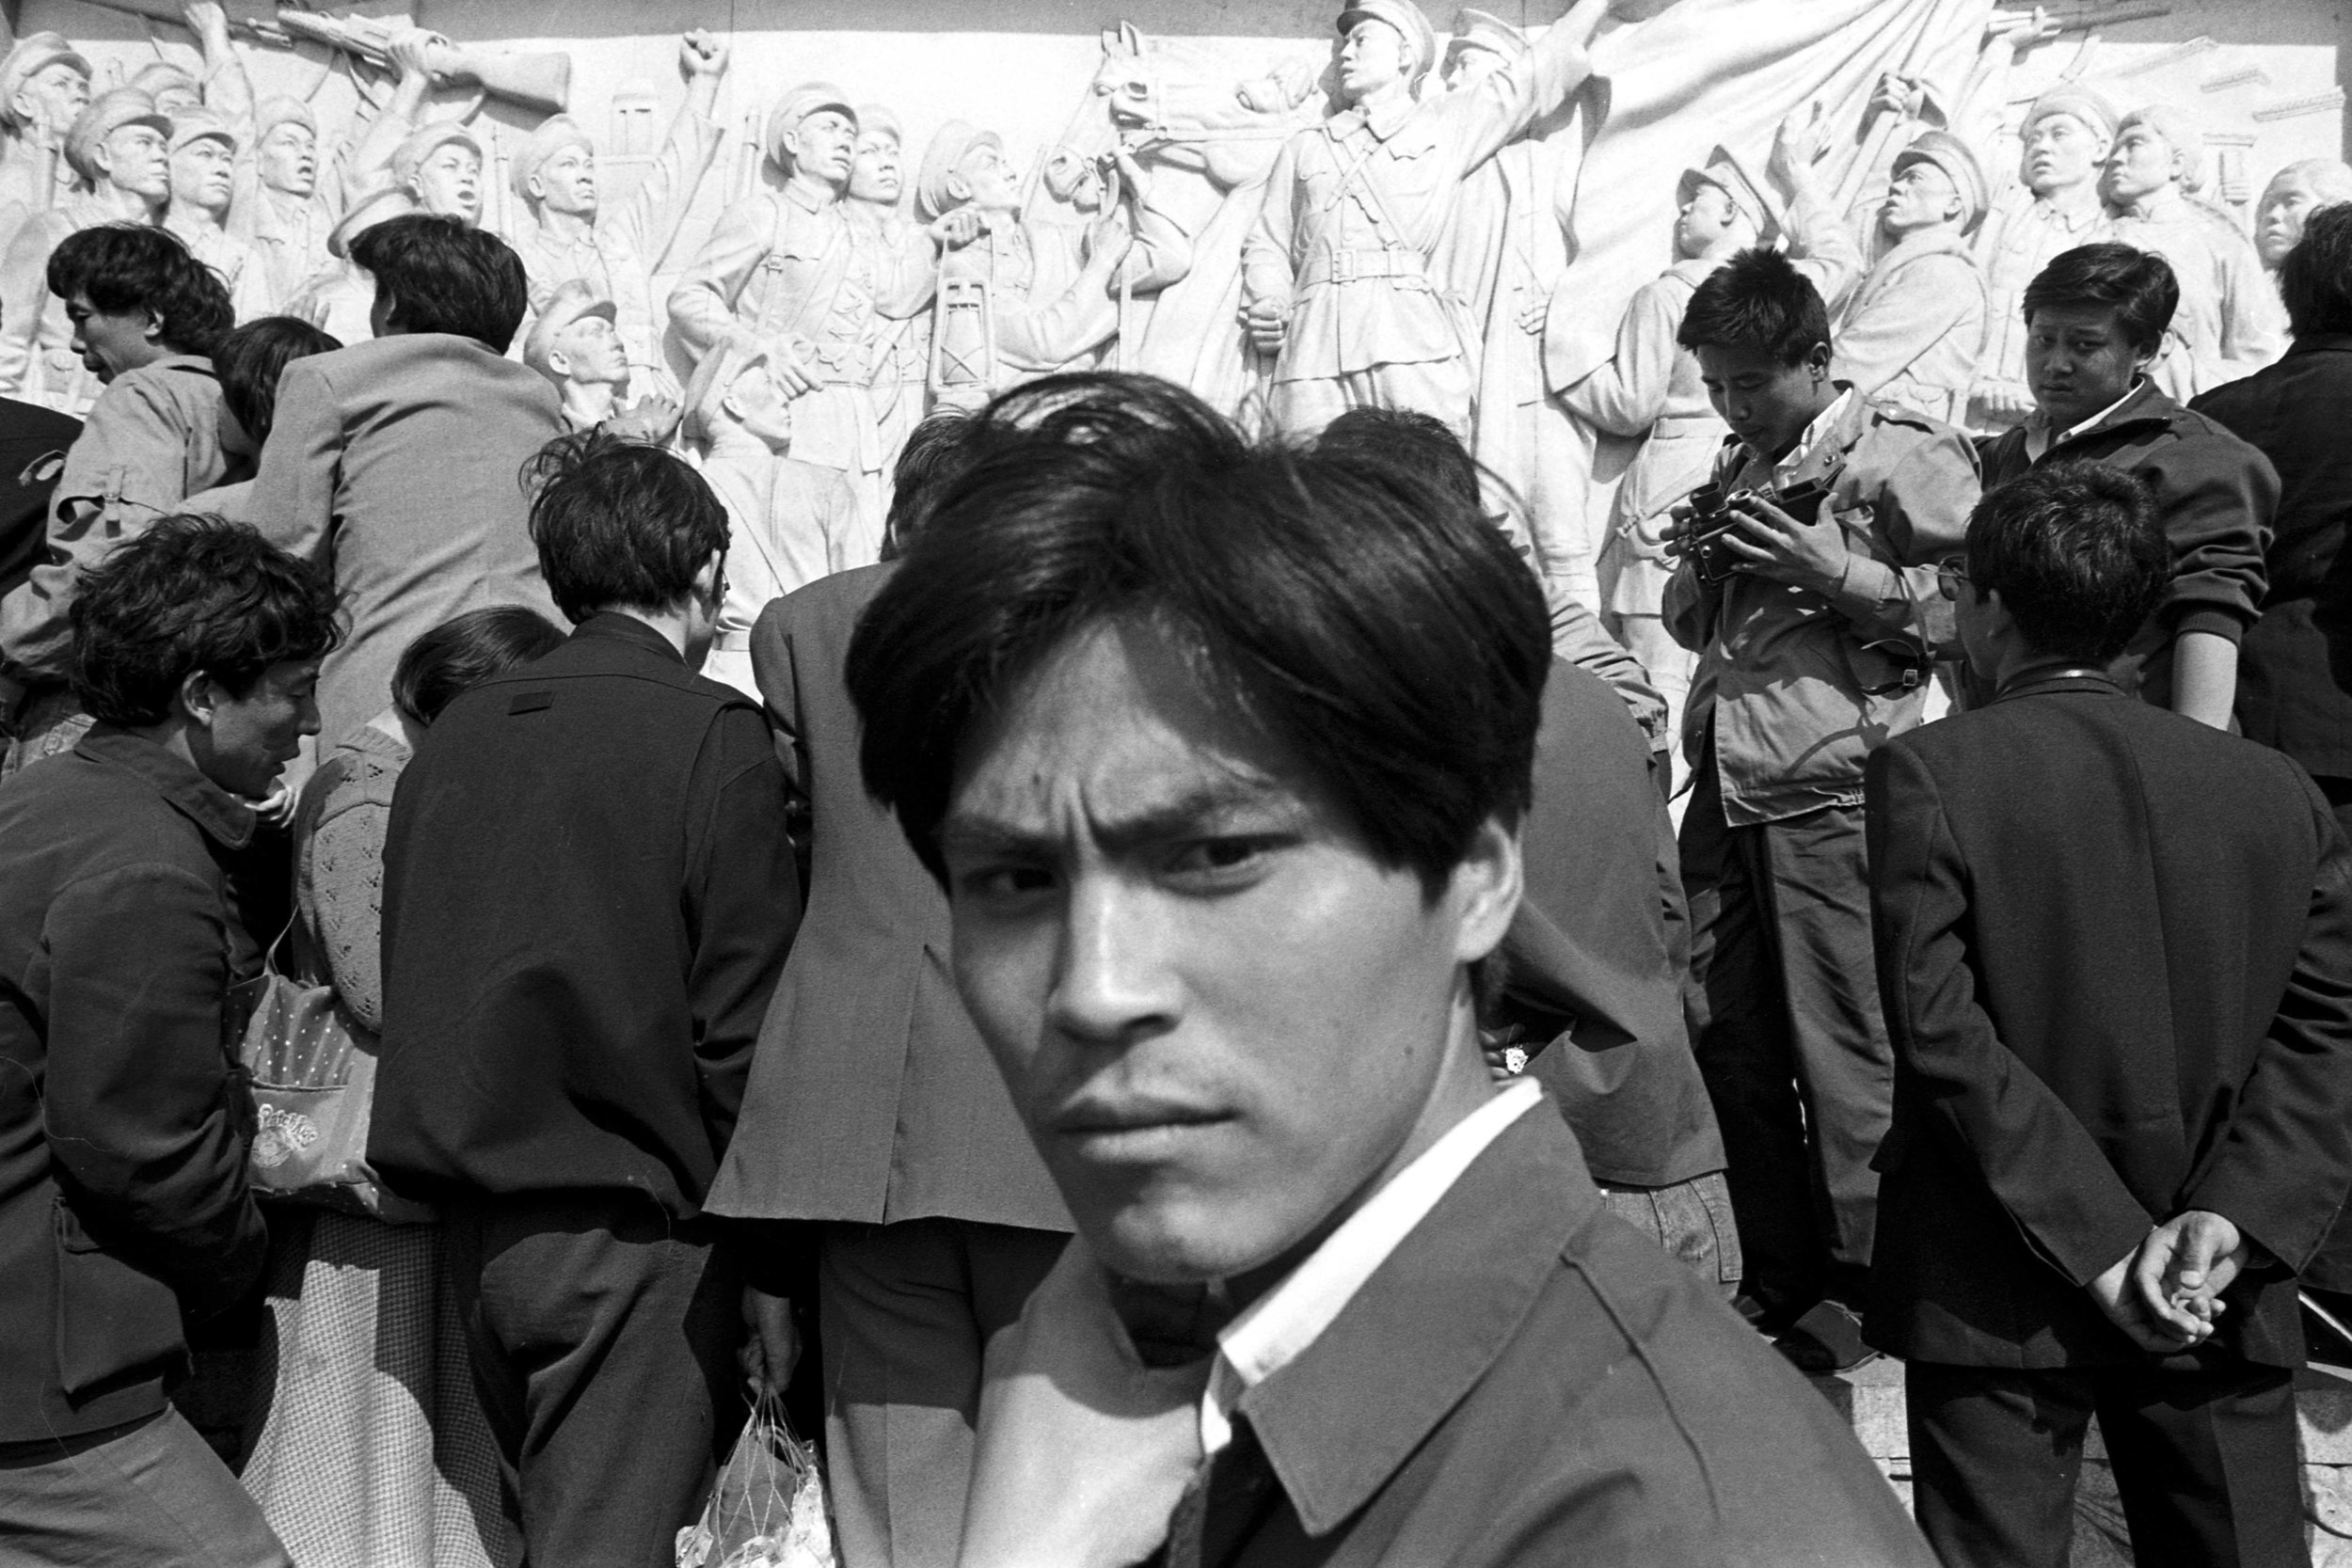 Staring at the camera, with sculptural reliefs from the Monument to the People's Heroes in the background. Photo taken on April 25, 1989. Photo credit: Hsieh San-tai, Howling 1989.